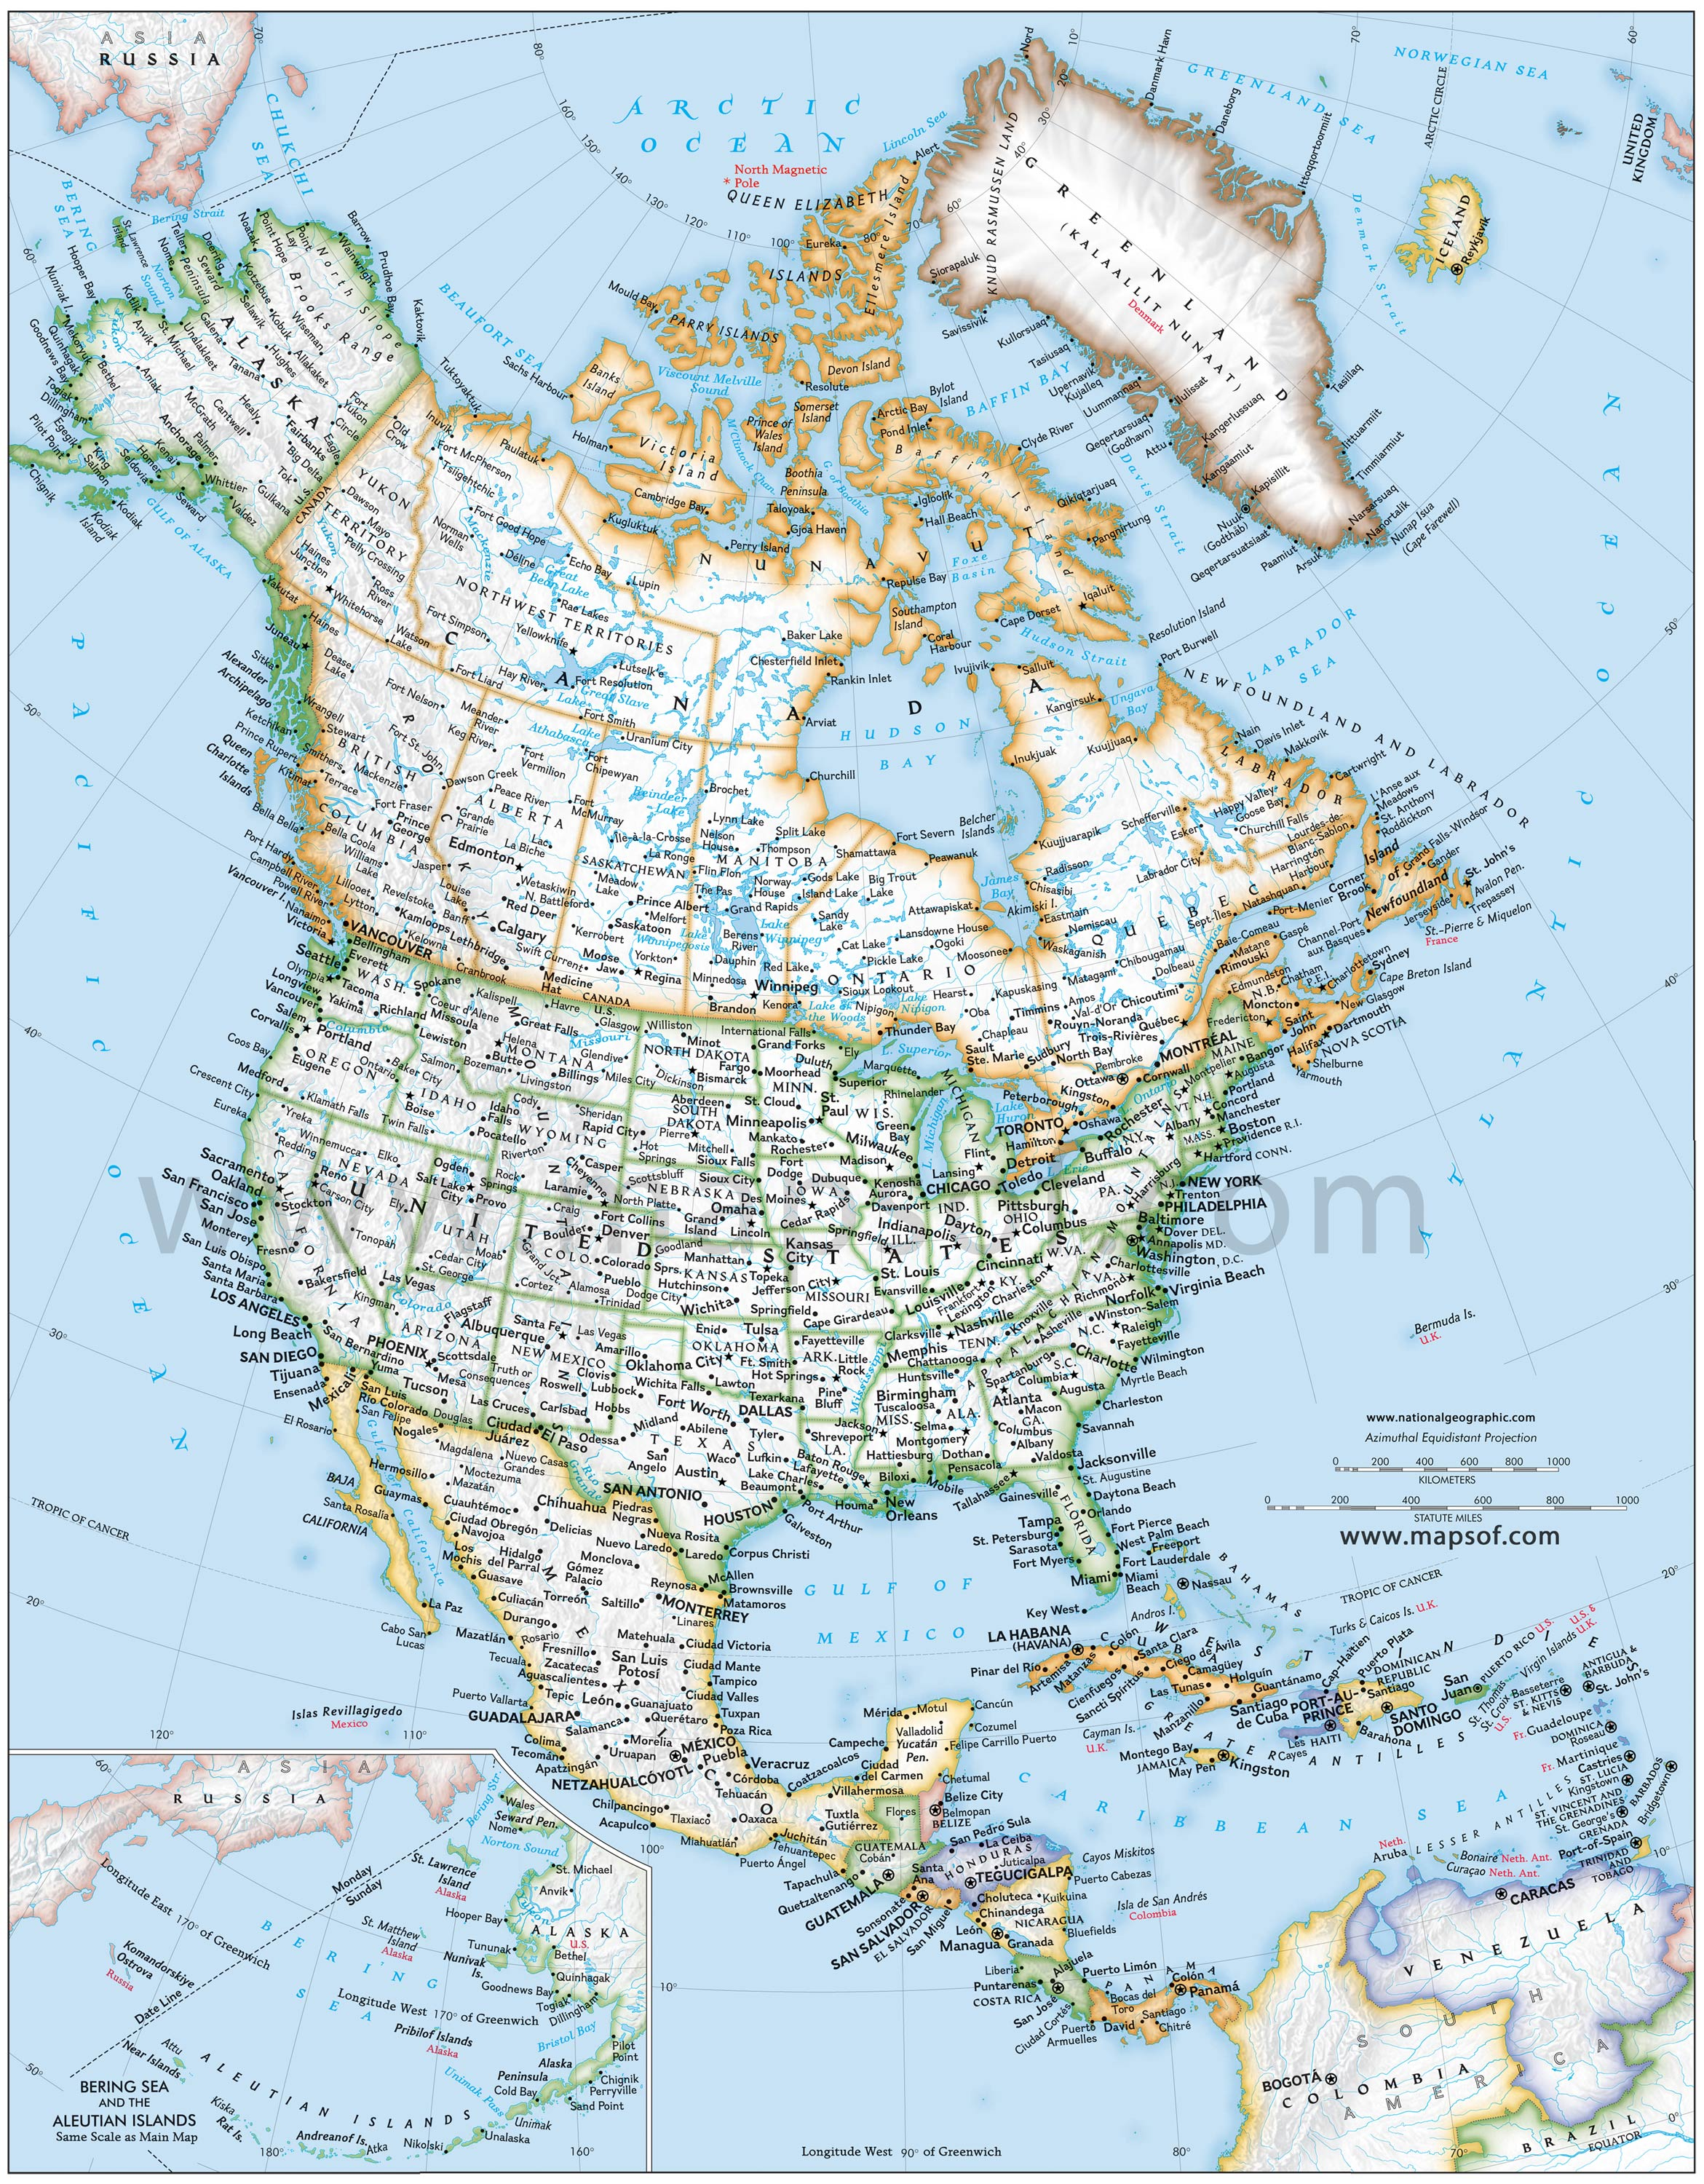 North America Political Map Mapsofnet - Maps of north america